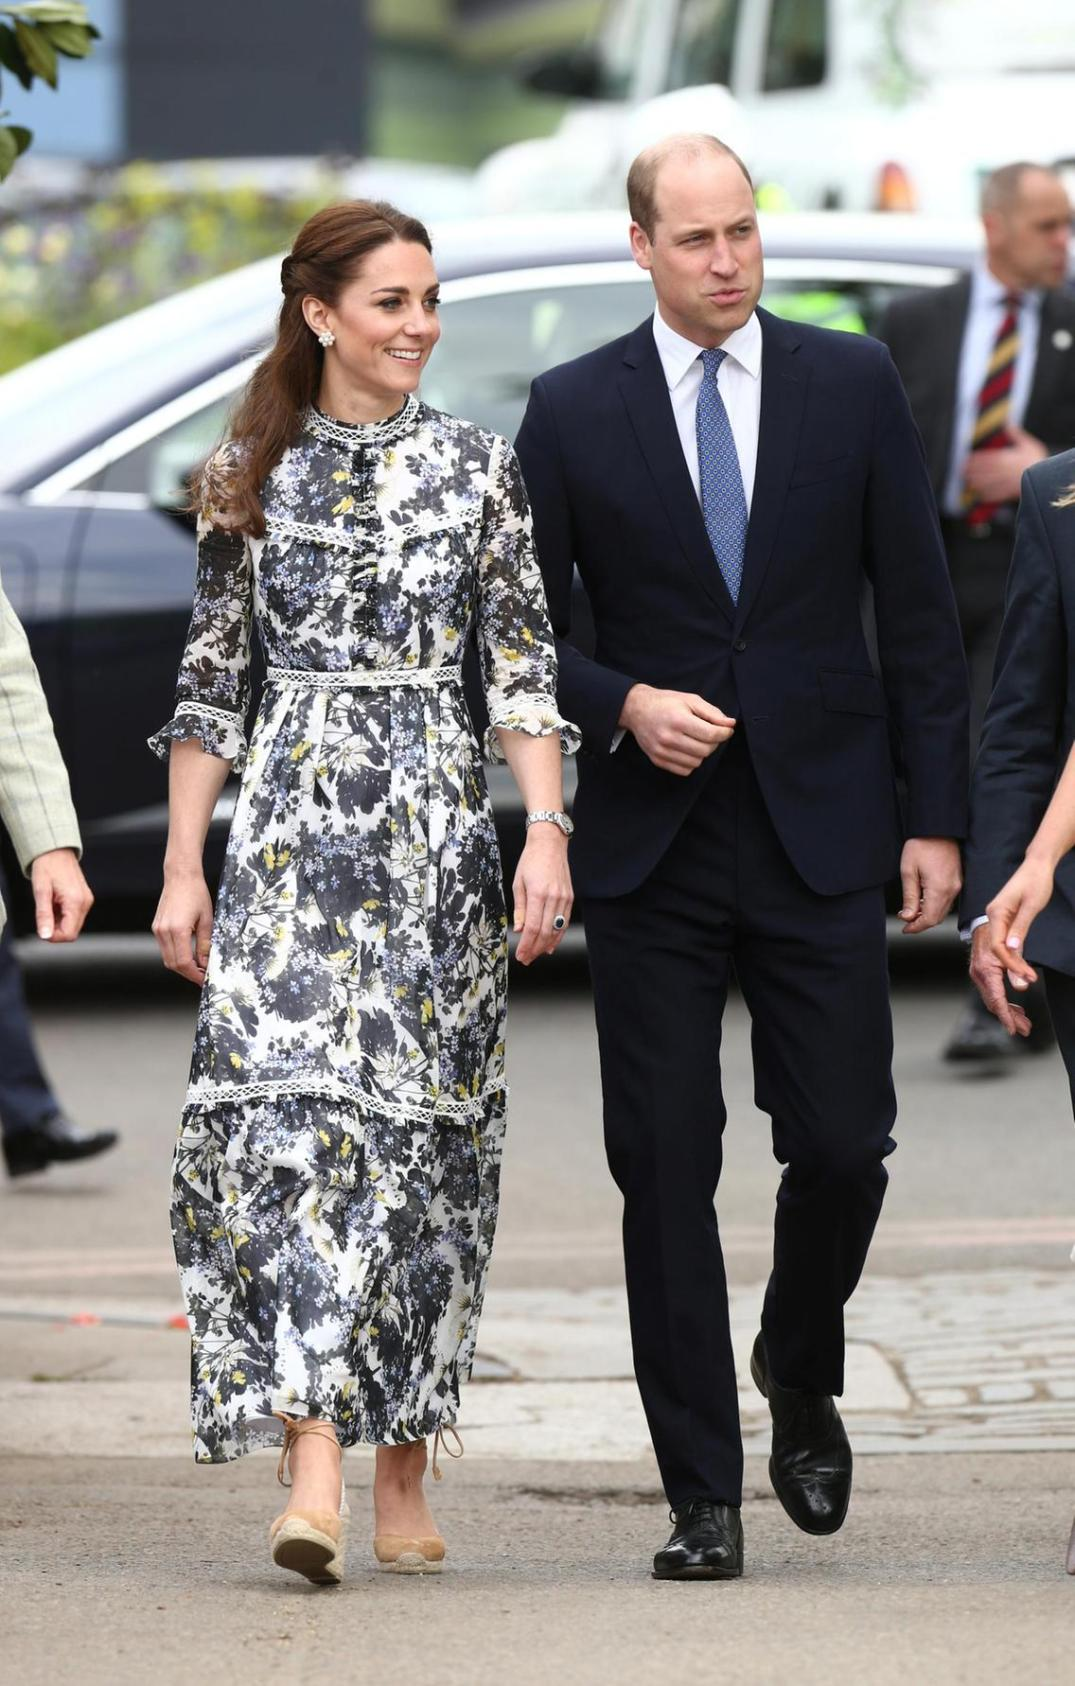 2019-05-20T183857Z_966234931_RC165279C830_RTRMADP_3_BRITAIN-FLOWER-ROYALS.jpg